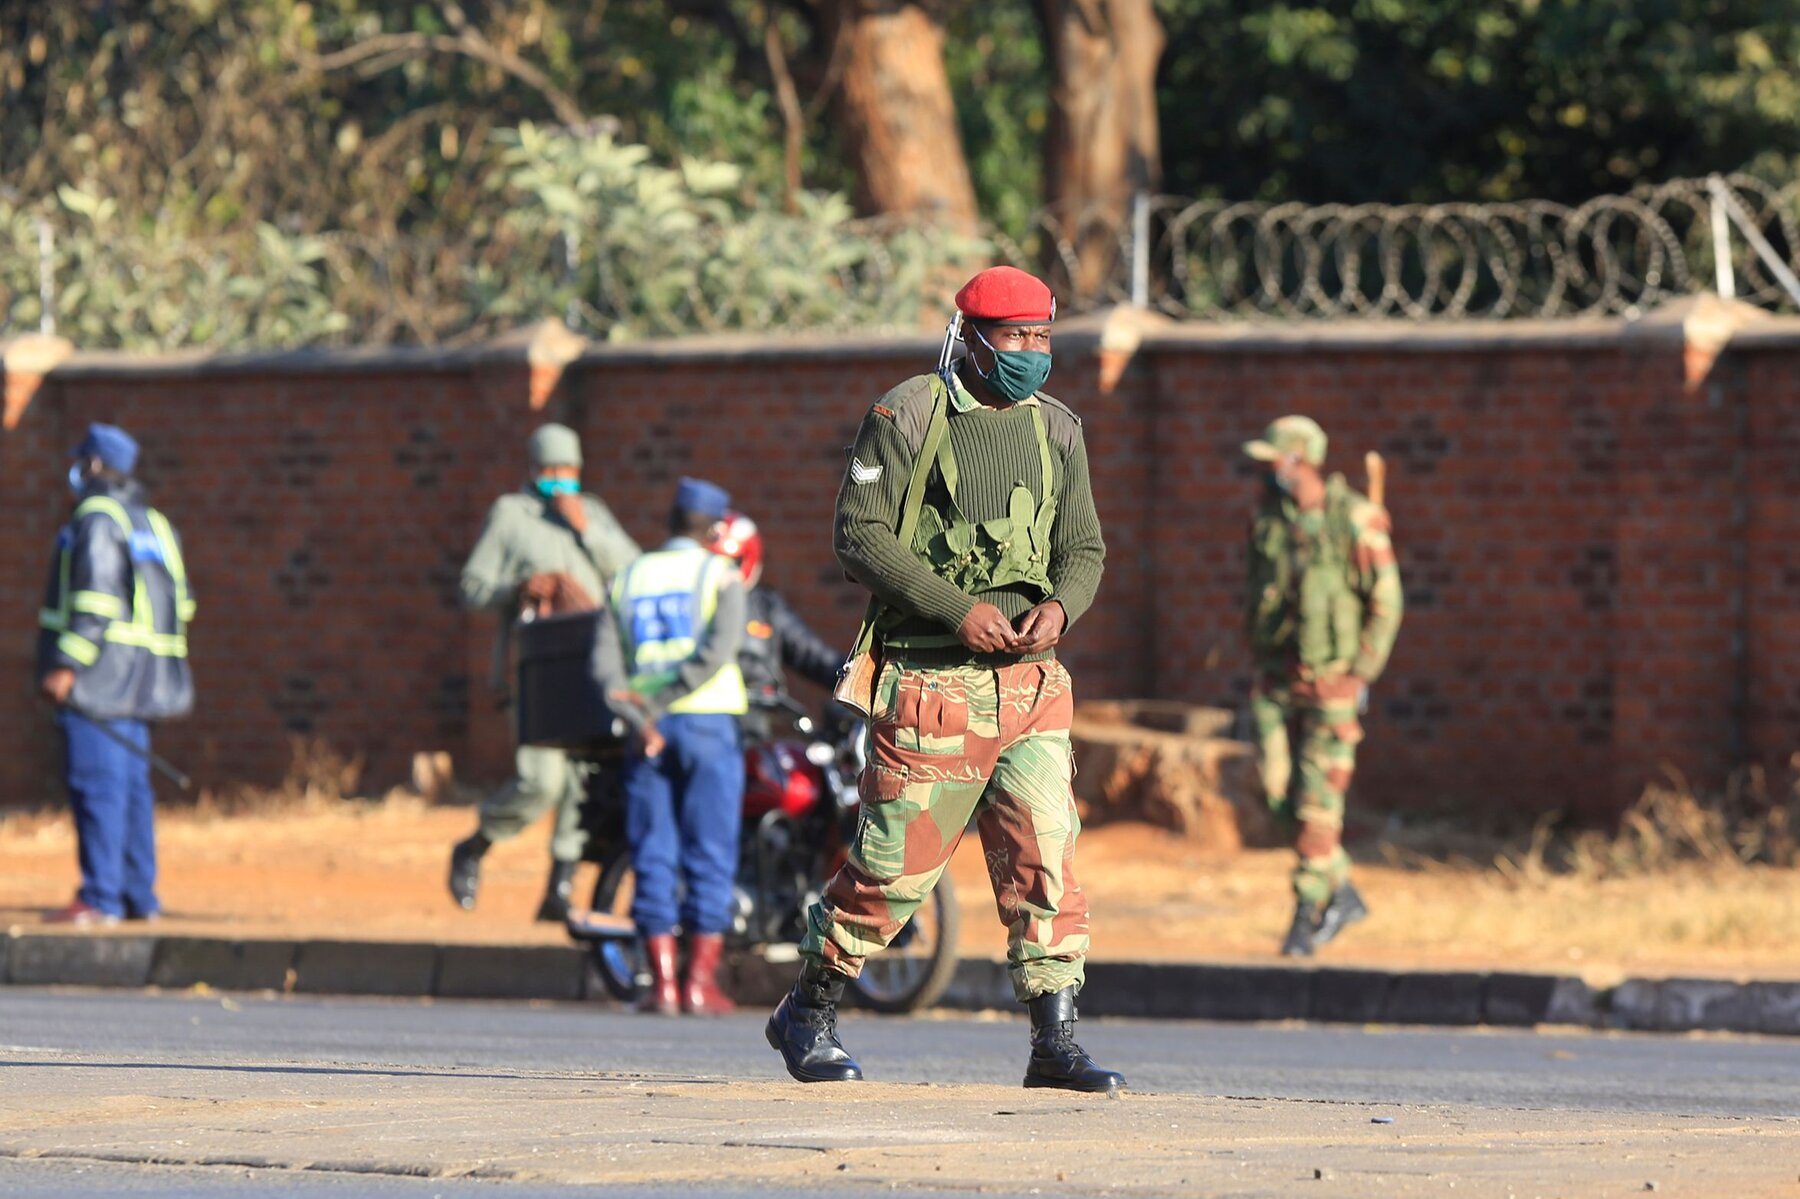 Zimbabwean Security forces monitor the Situation In the Streets..